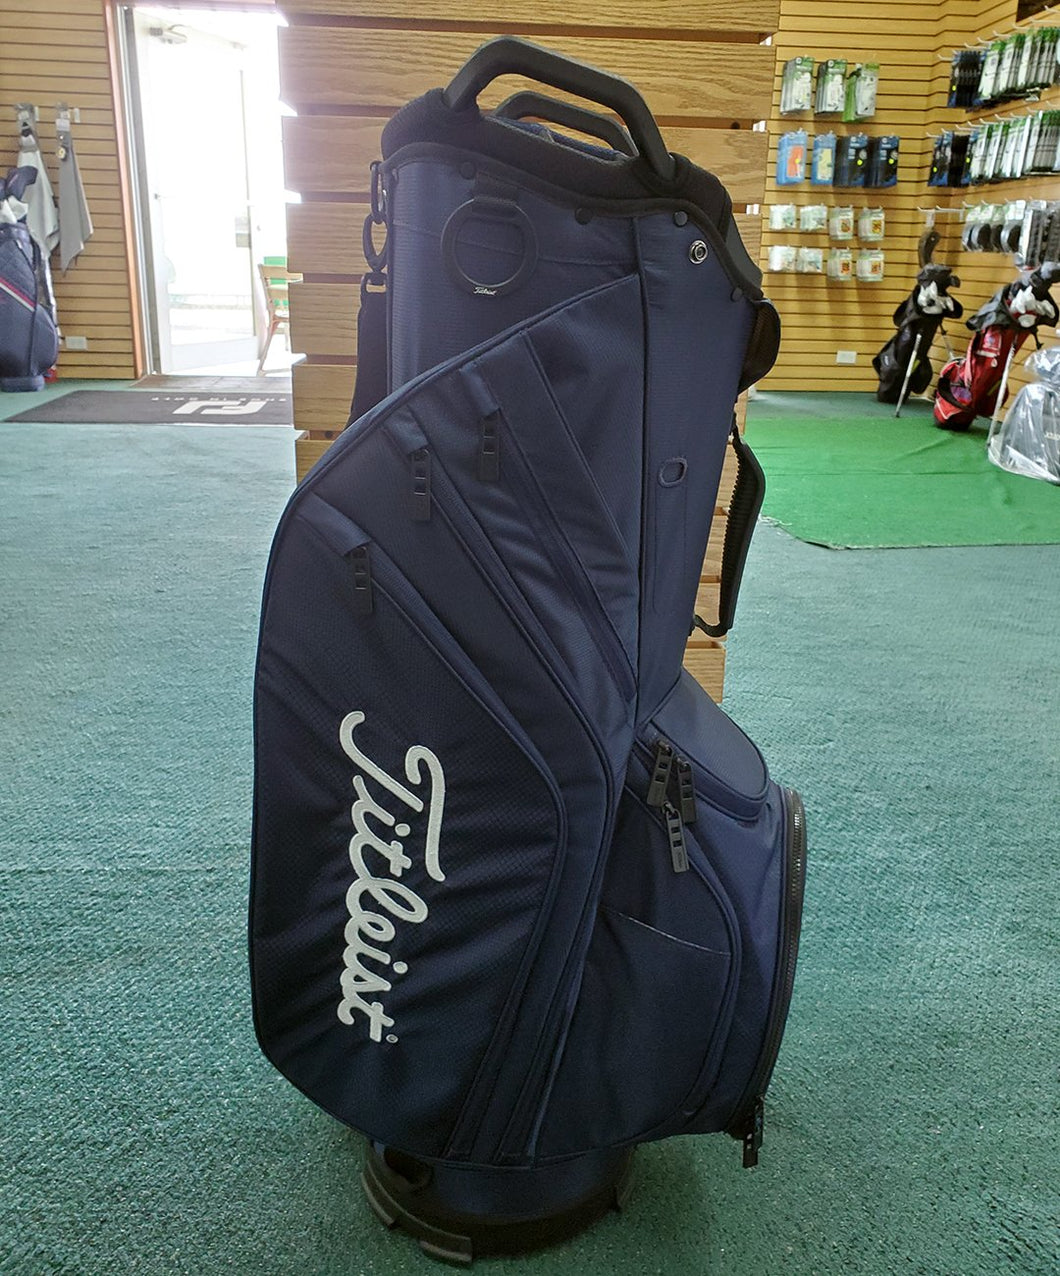 TITLEIST Staff Golf Bag